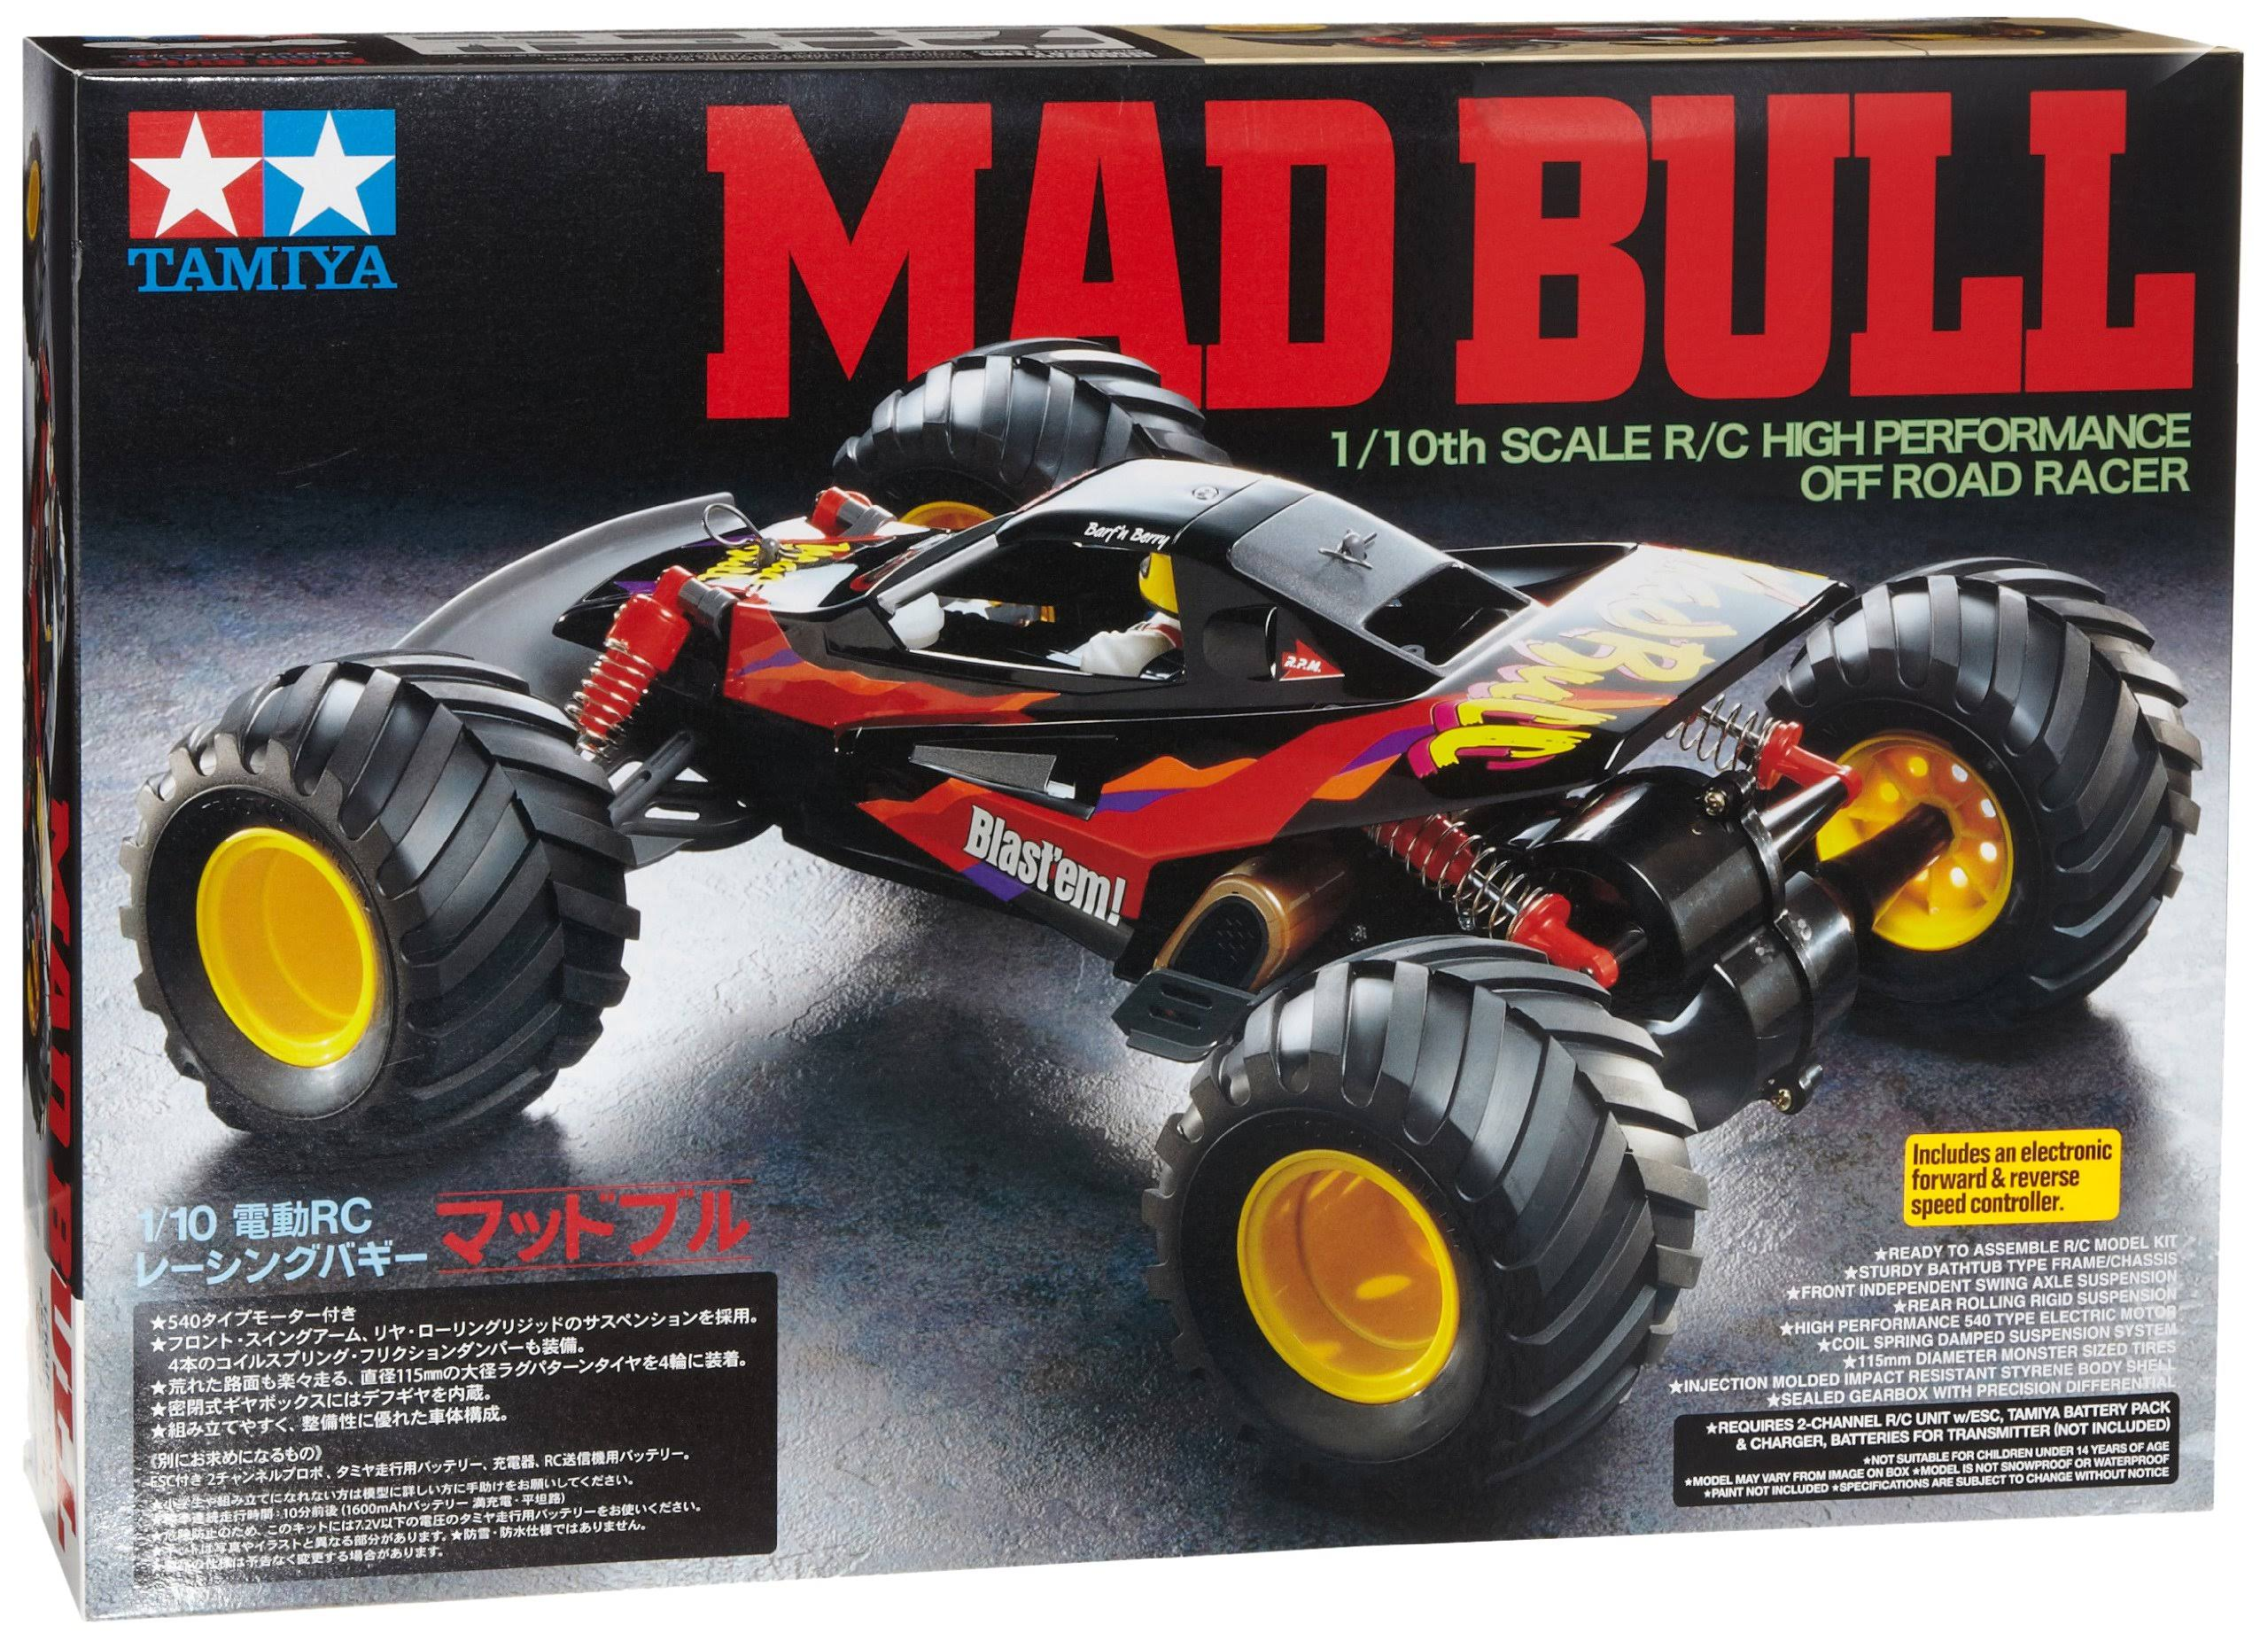 Tamiya Rc Model Mad Bull Buggy 2WD Kit - 1:10 Scale